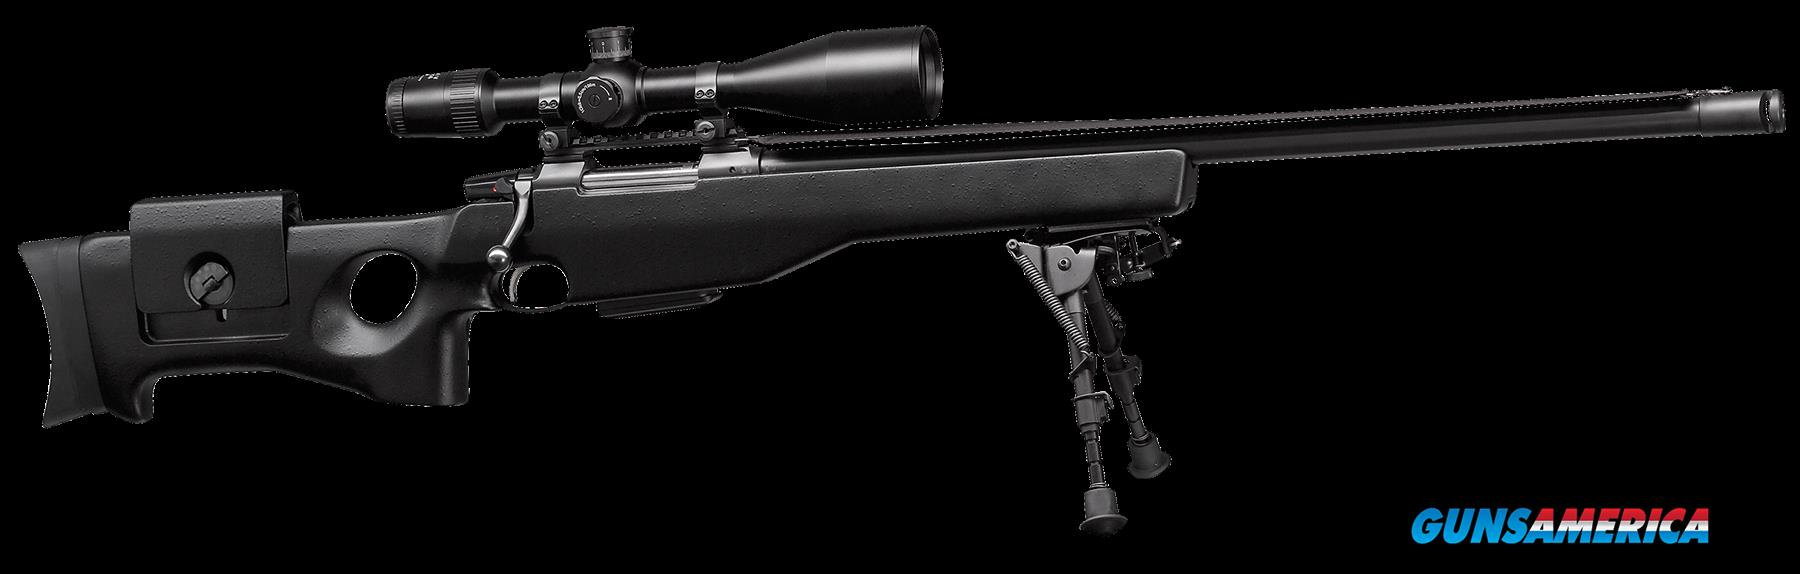 CZ USA 308 Winchester Bolt Action Sniper Rifle w/Blue Barrel & Synthetic Stock  Guns > Pistols > CZ Pistols